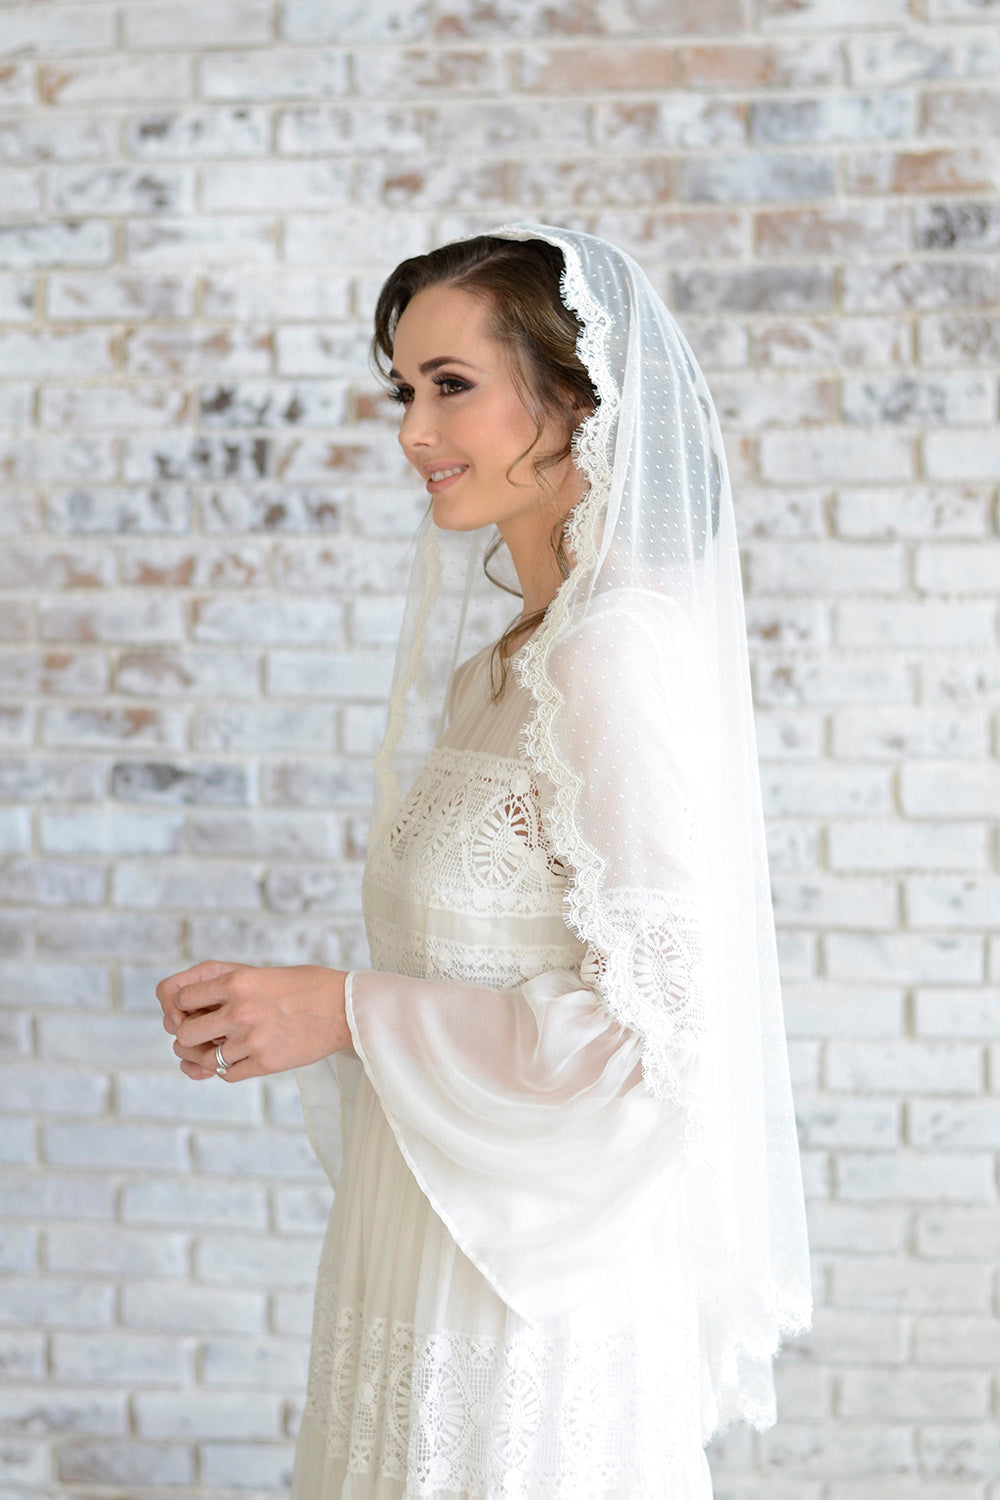 Lace Mantilla Wedding Veil with Polka dot tulle; Long dotted veil ...